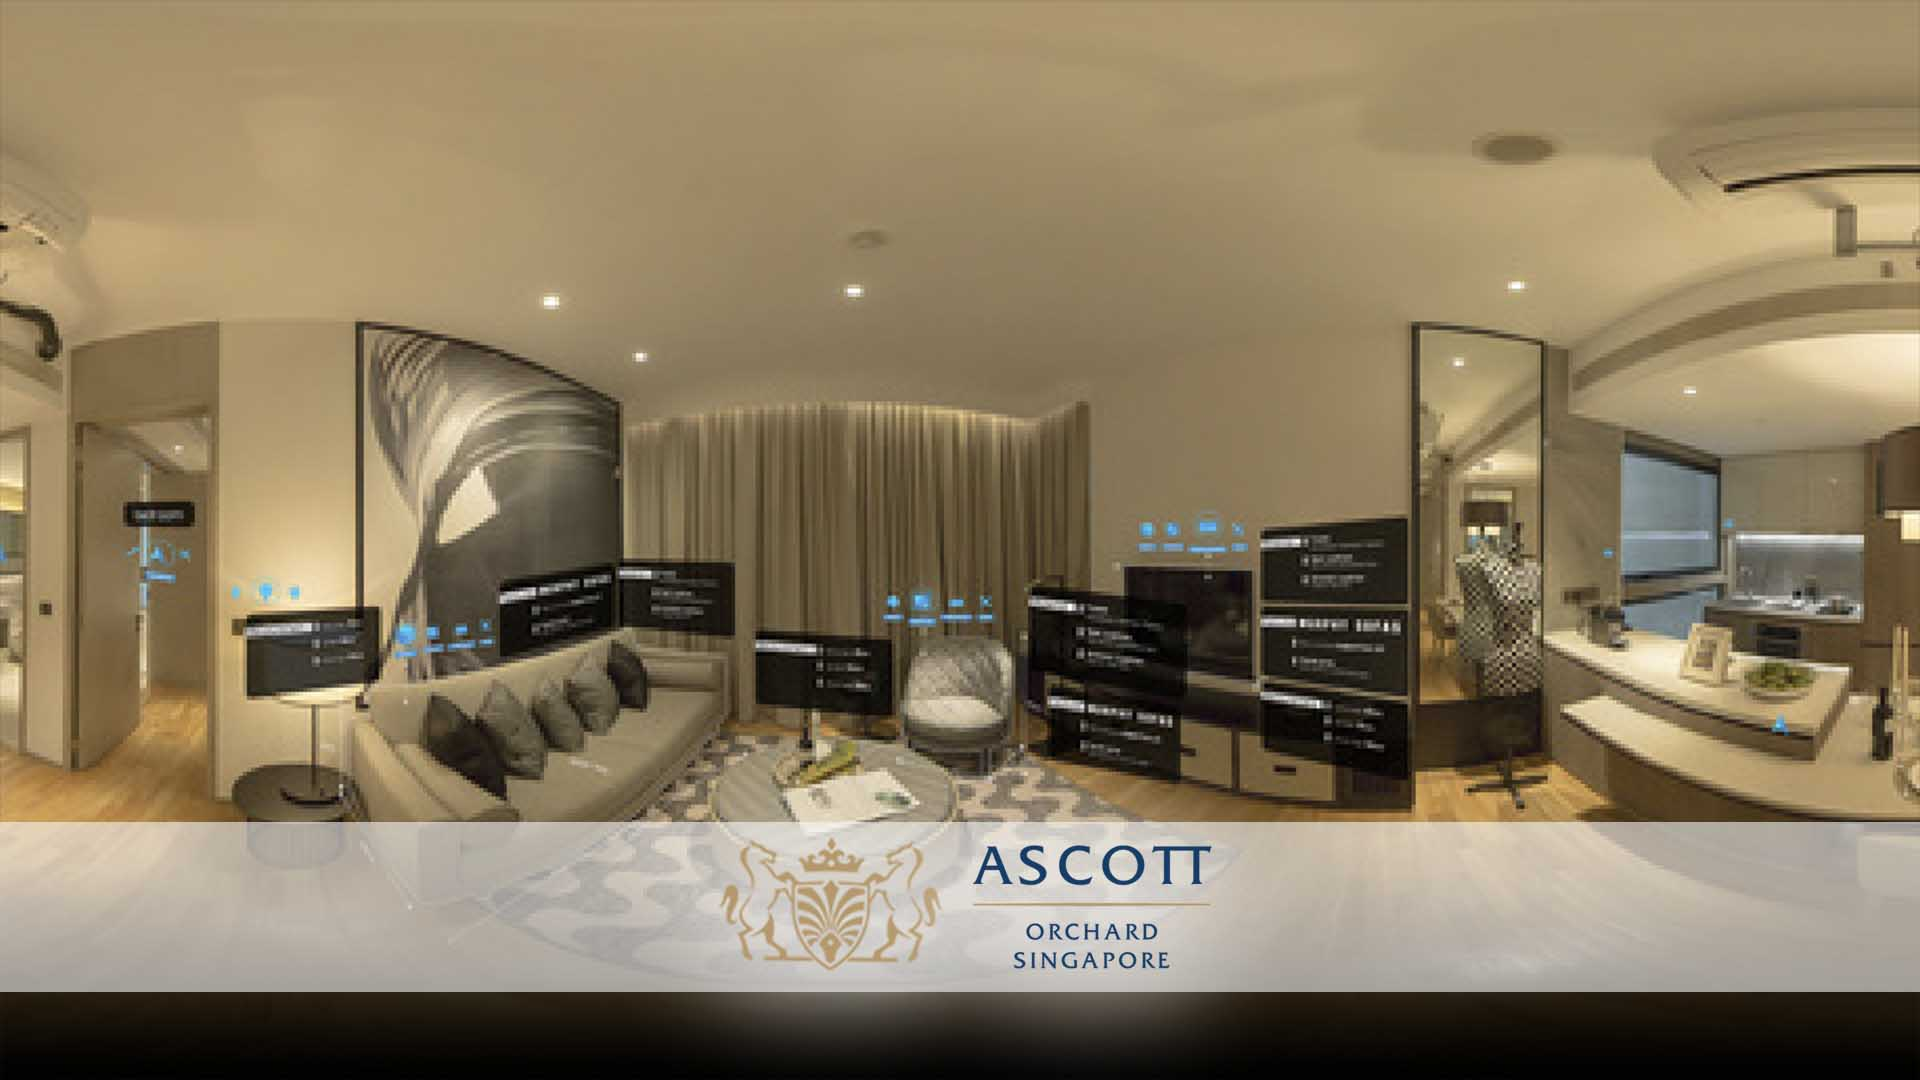 Ascott Orchard Singapore Interactive VR Experience